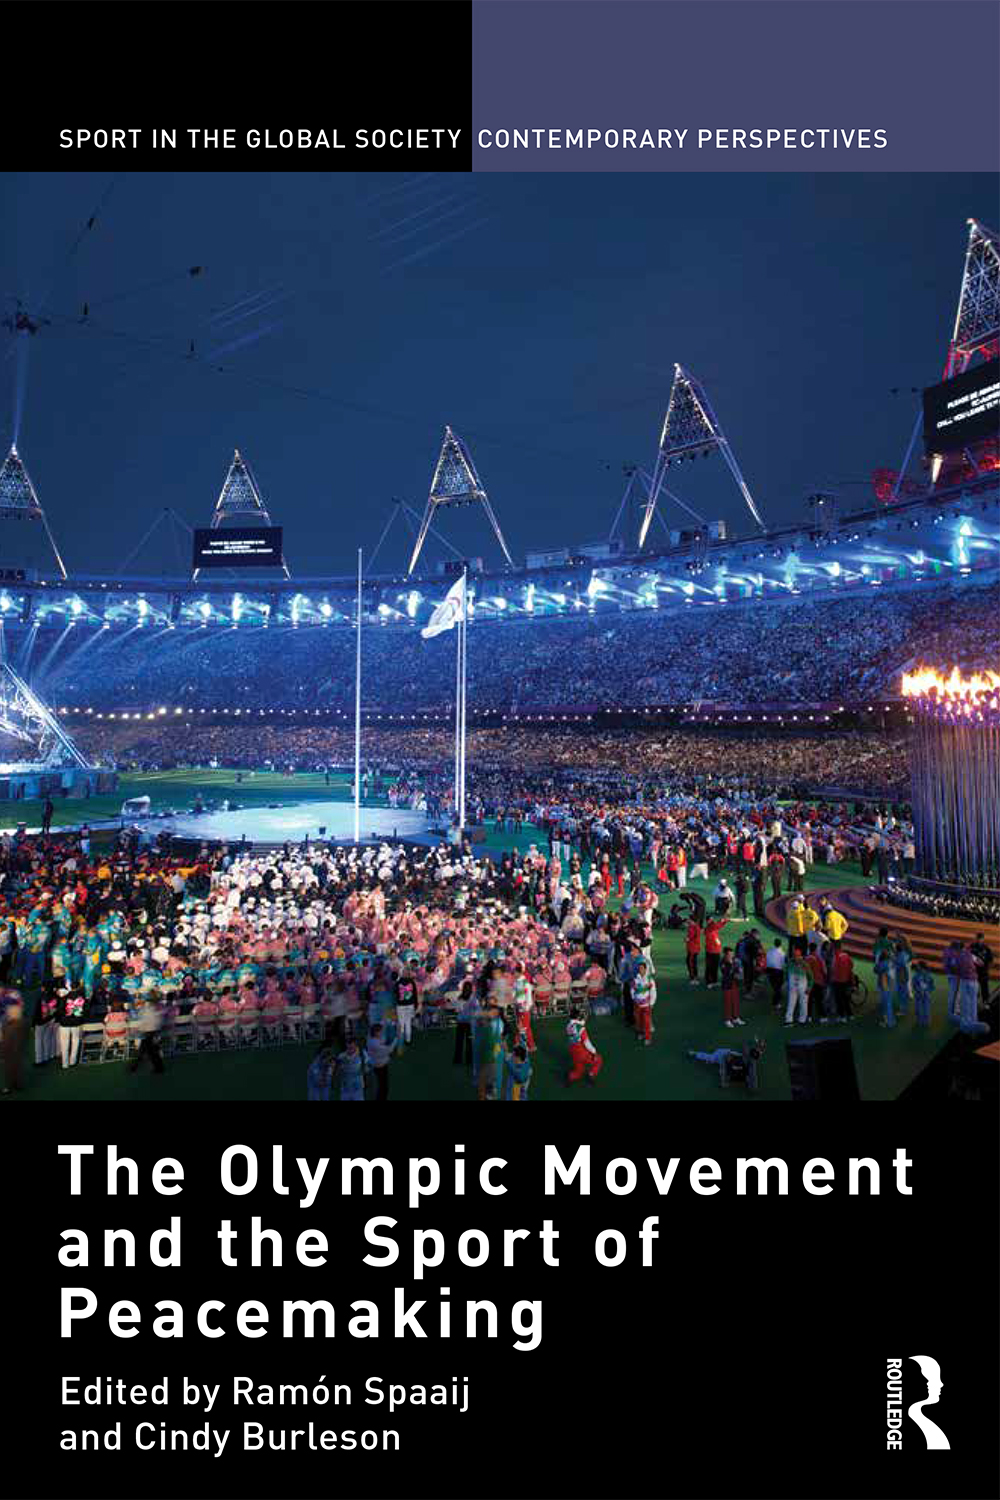 The-Olympic-Movement-and-the-Sport-of-Peacemaking.jpg